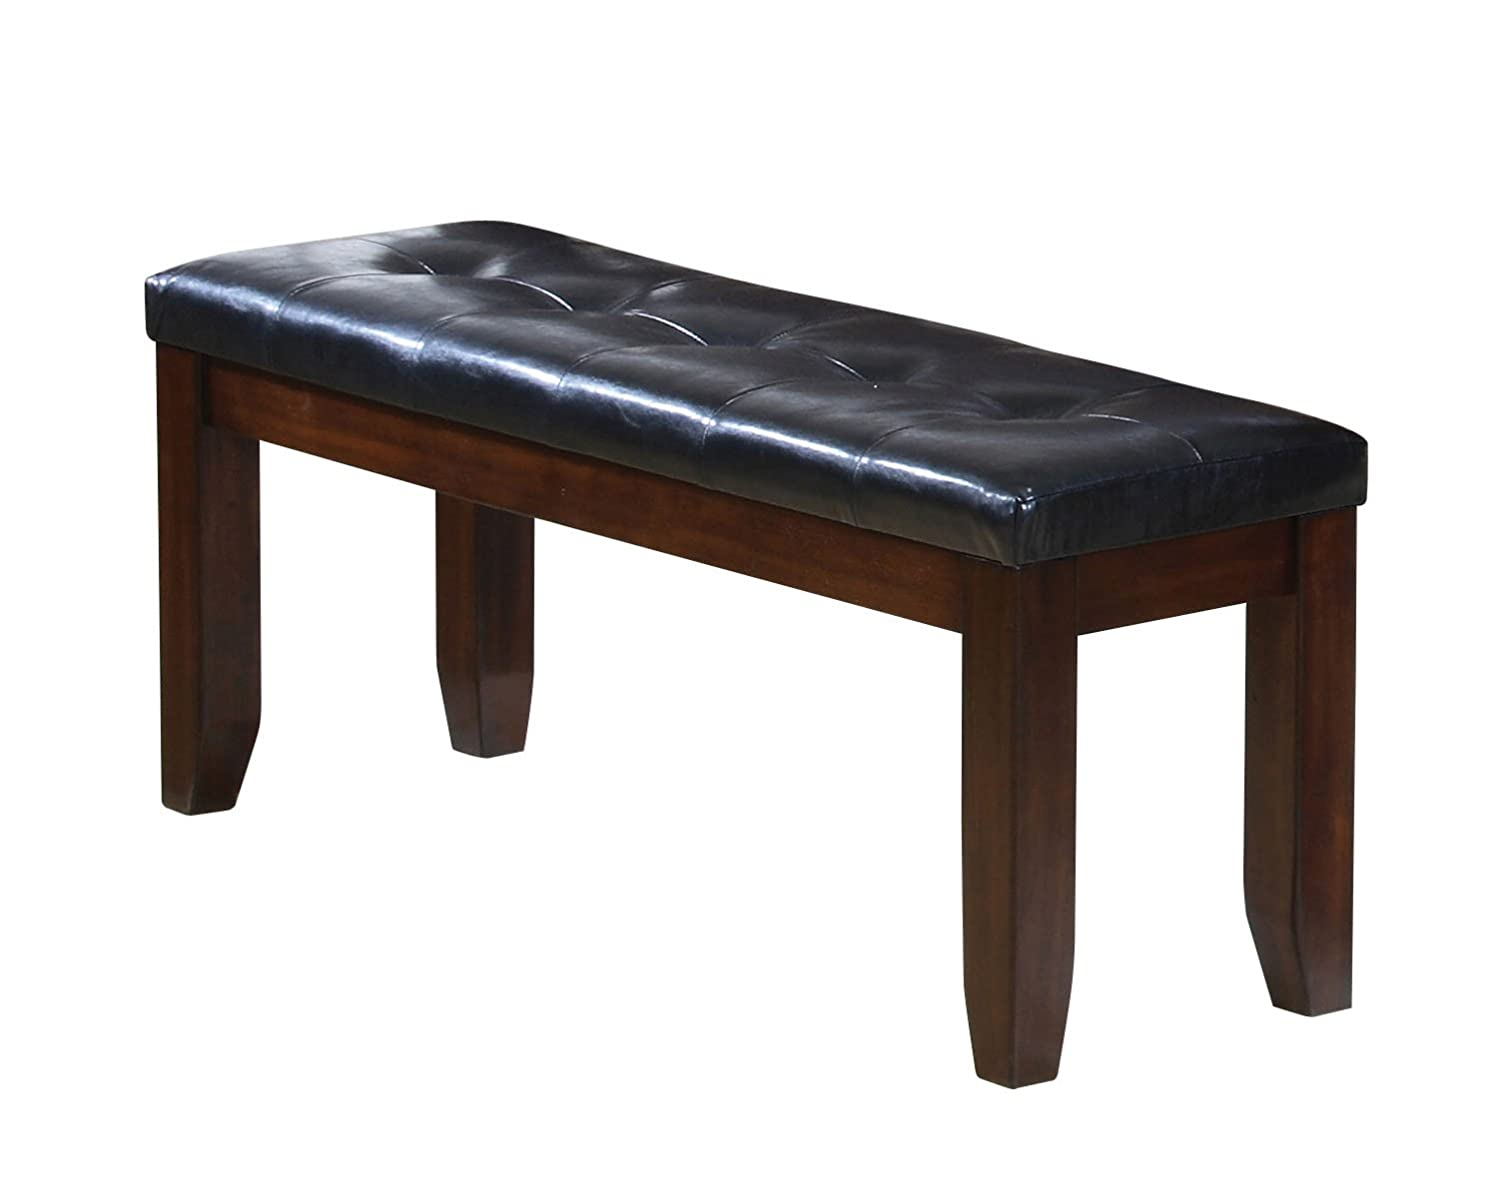 ACME 0 Solid Hardwood Dining Bench, Country Cherry Finish